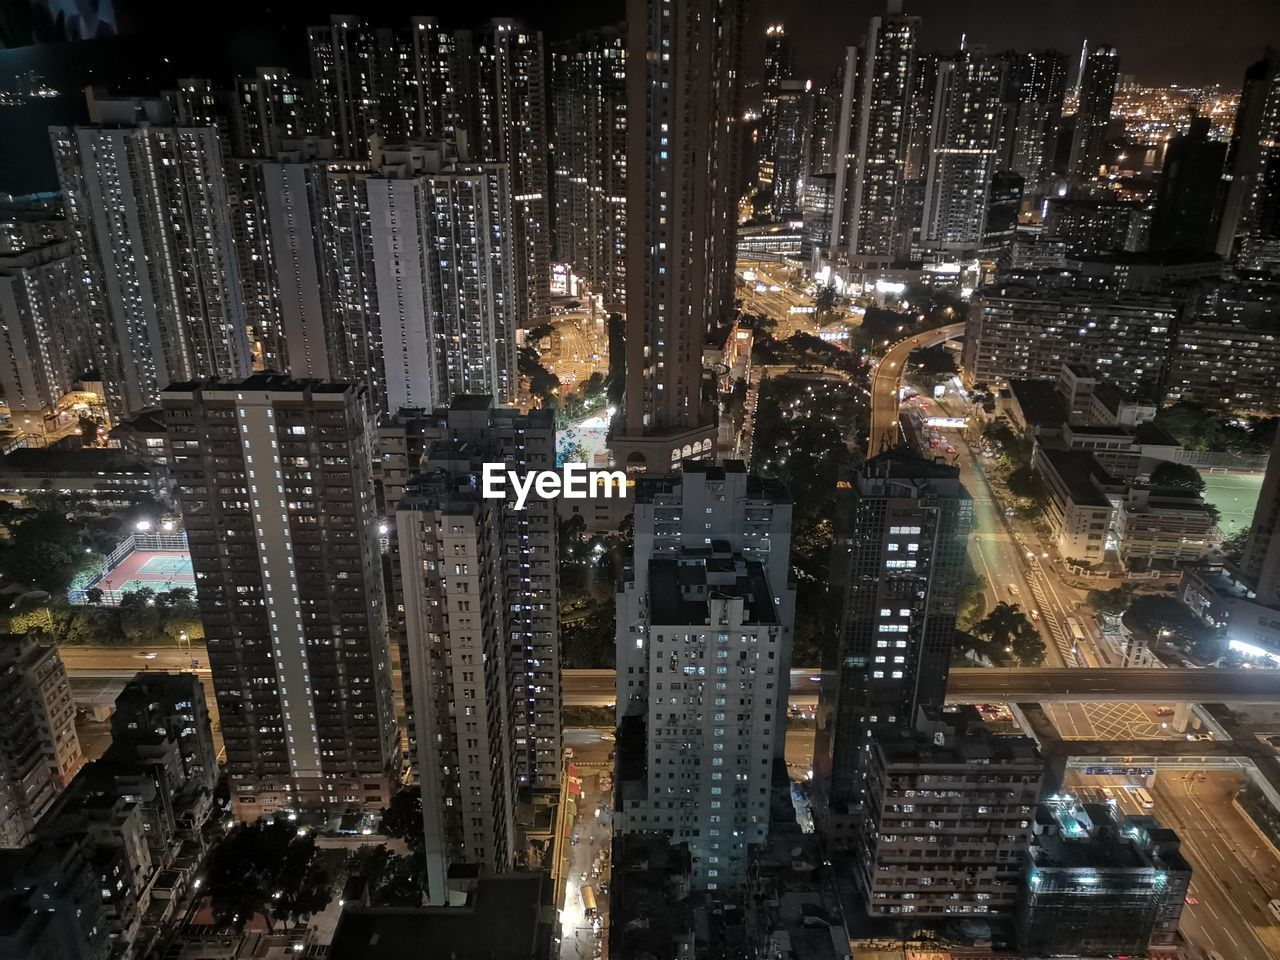 city, night, illuminated, building exterior, cityscape, architecture, skyscraper, built structure, building, office building exterior, crowd, city life, crowded, tall - high, tower, modern, high angle view, office, residential district, outdoors, financial district, nightlife